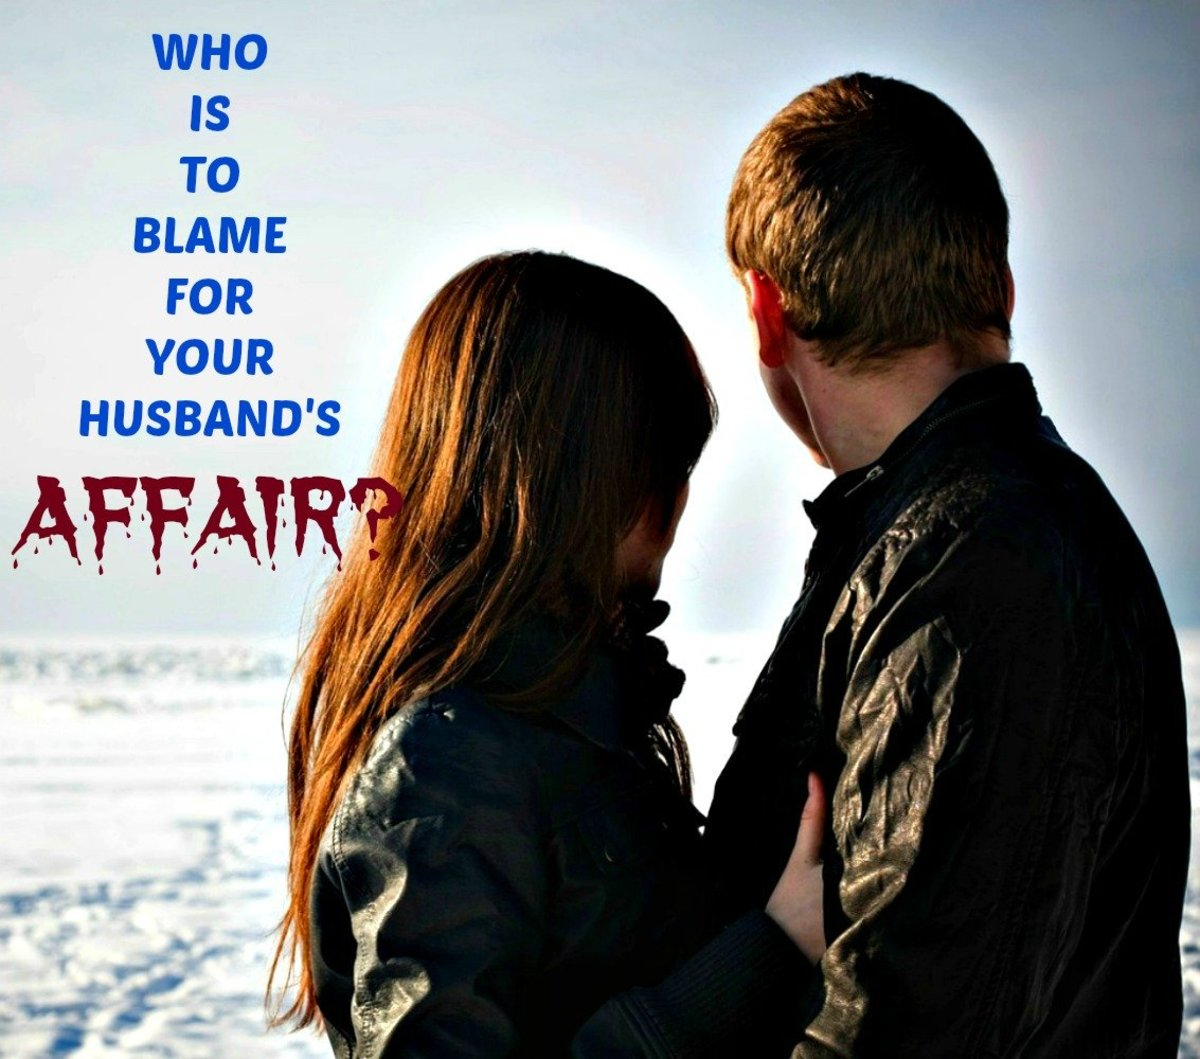 What is it that causes a husband to cheat on his wife?